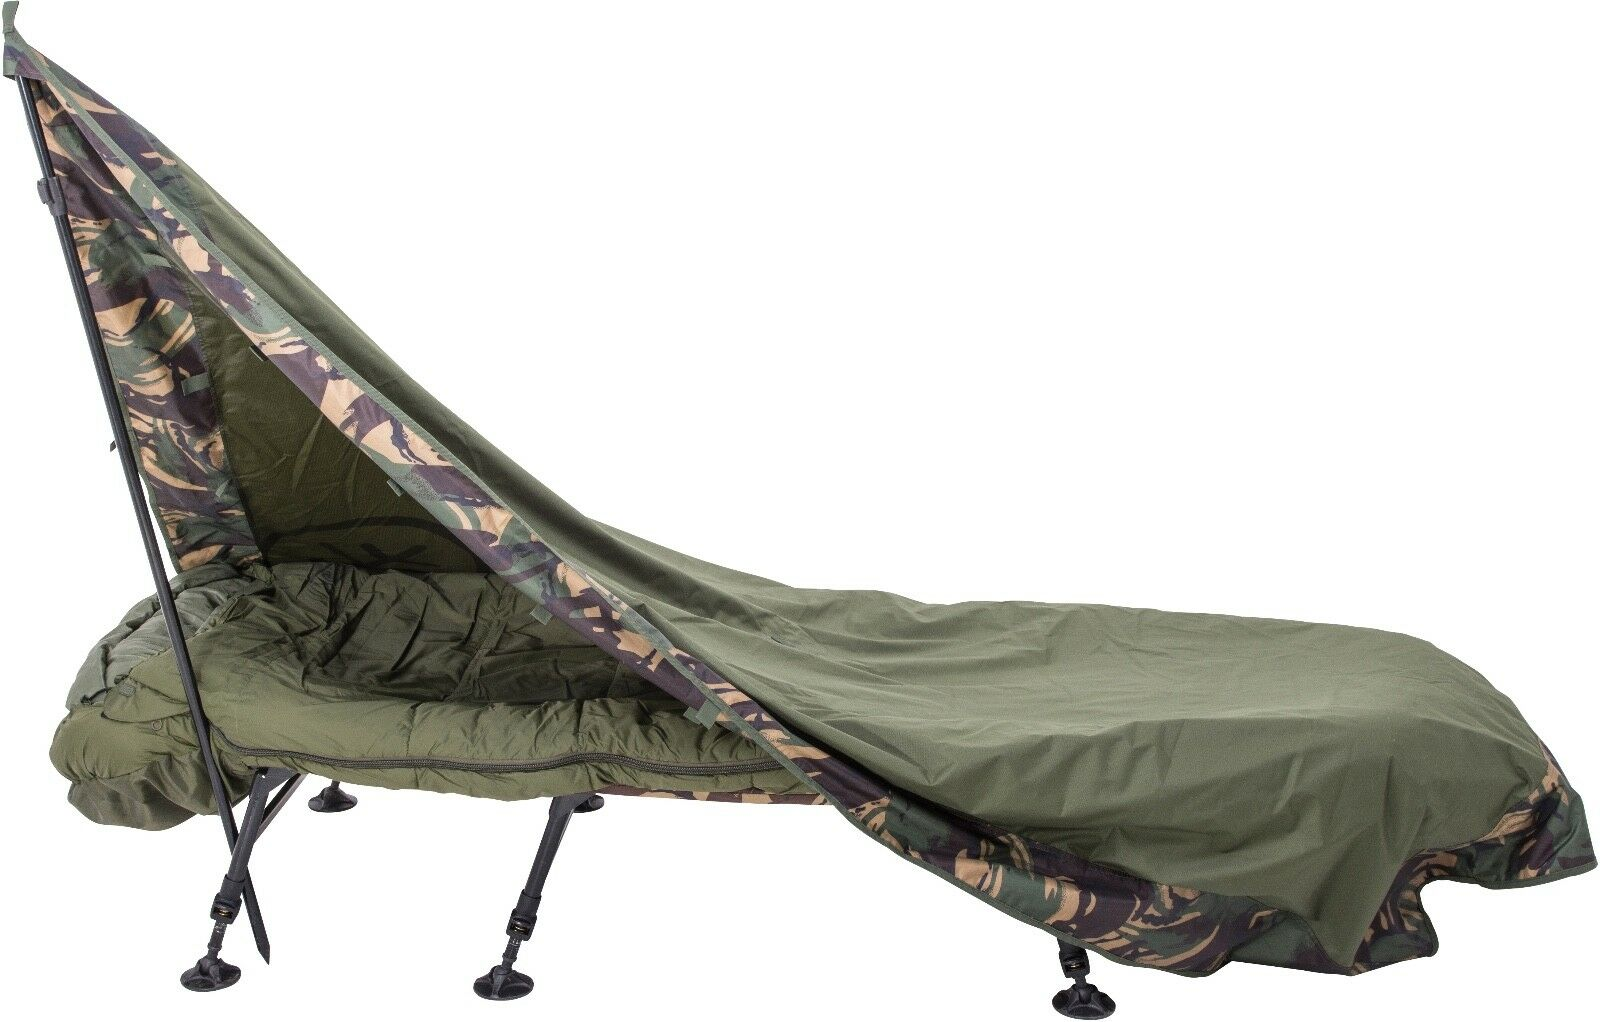 Wychwood Tactical  Carp Tarp - (H2403)  choose your favorite